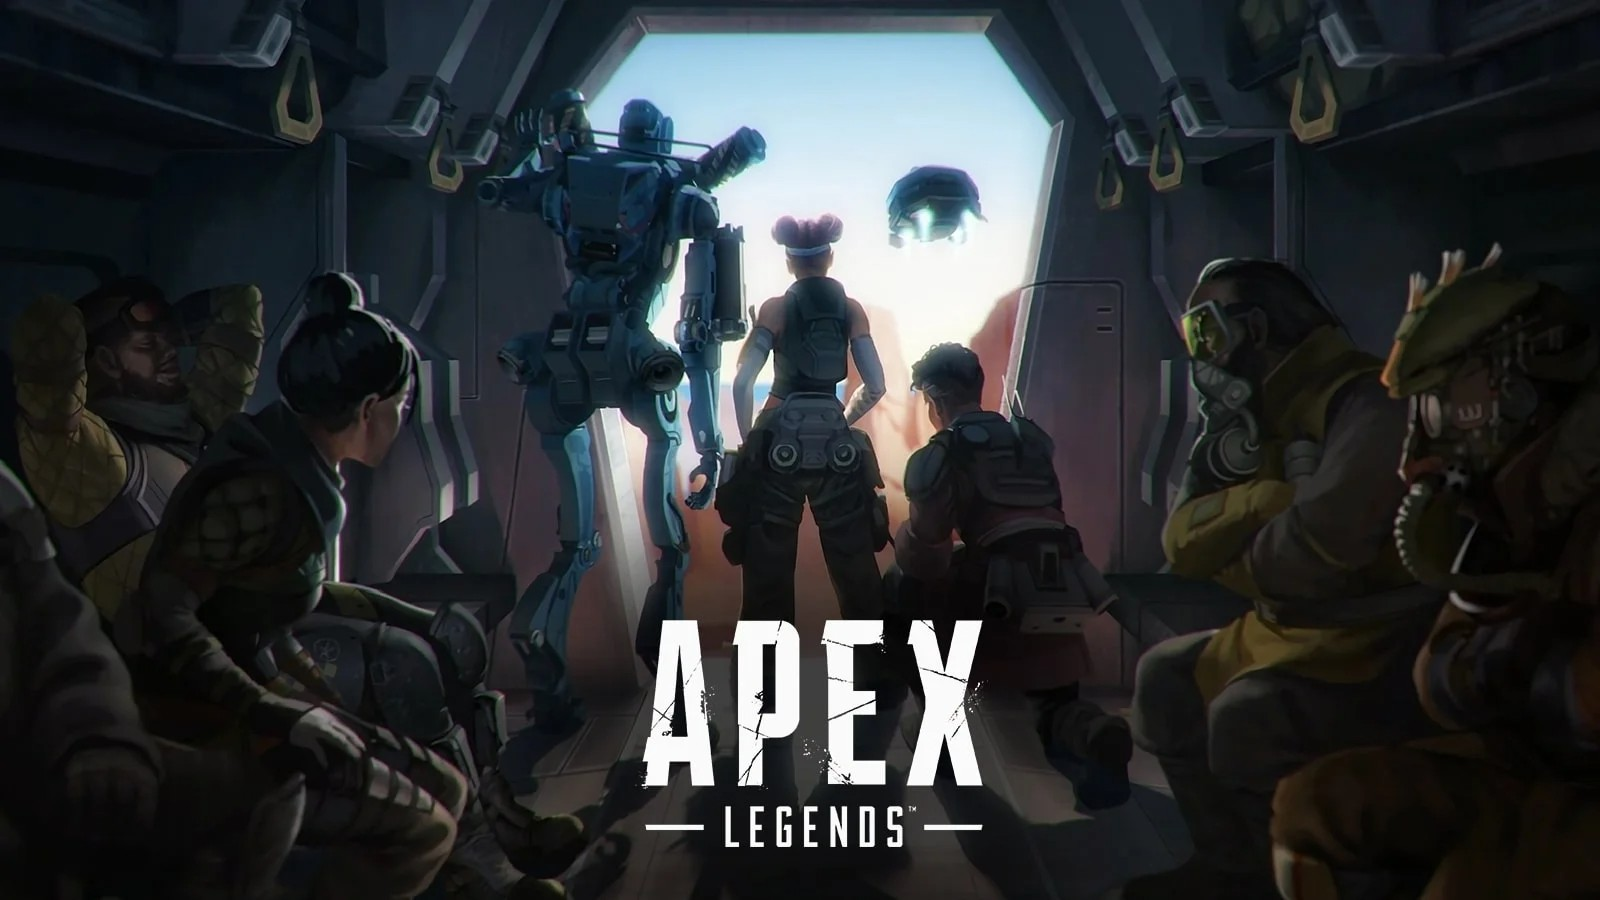 apex legends season 5 6 7 8 already in development respawn confirms 1 1